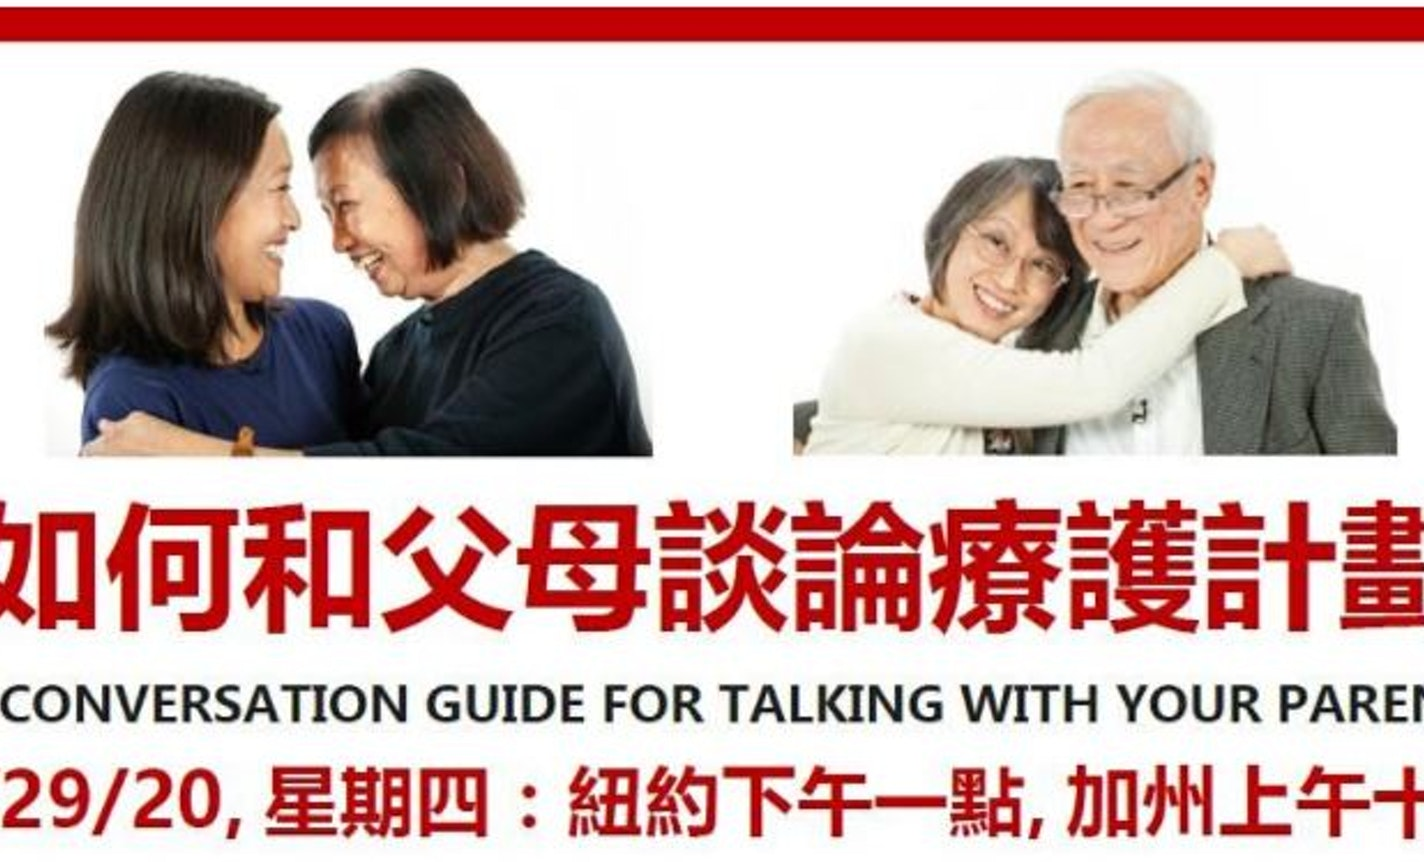 如何和父母談論療護計劃 ACP Conversation Guide for Talking with Parents